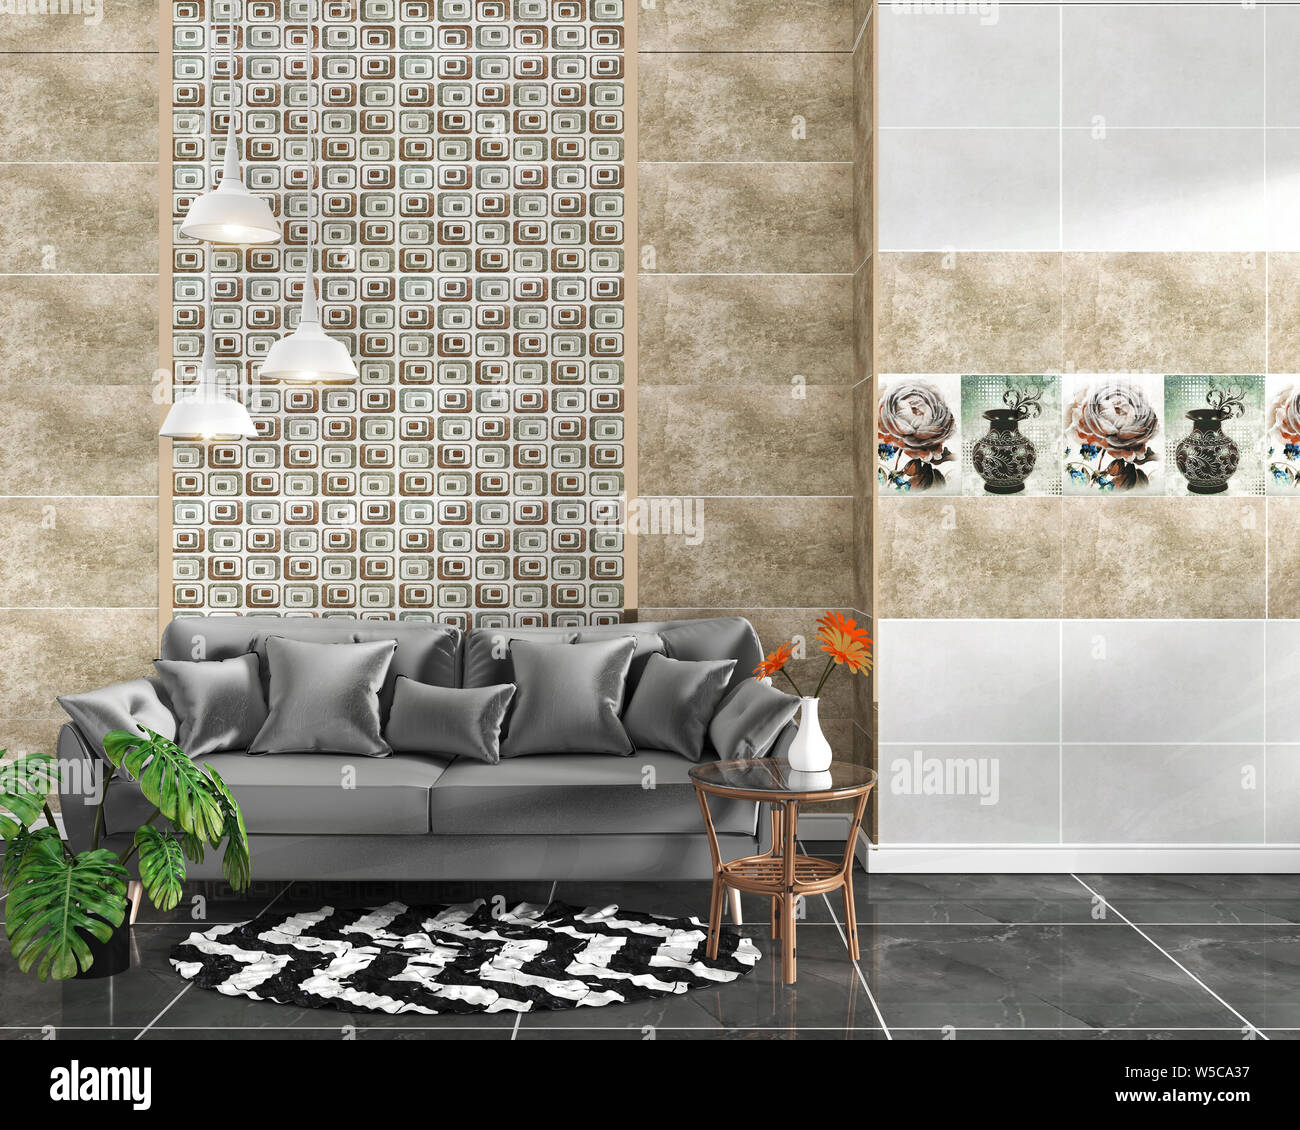 Living Room Interior With Tile Classic Texture Wall Background On Black Granite Tile Floor Minimal Designs 3d Rendering Stock Photo Alamy